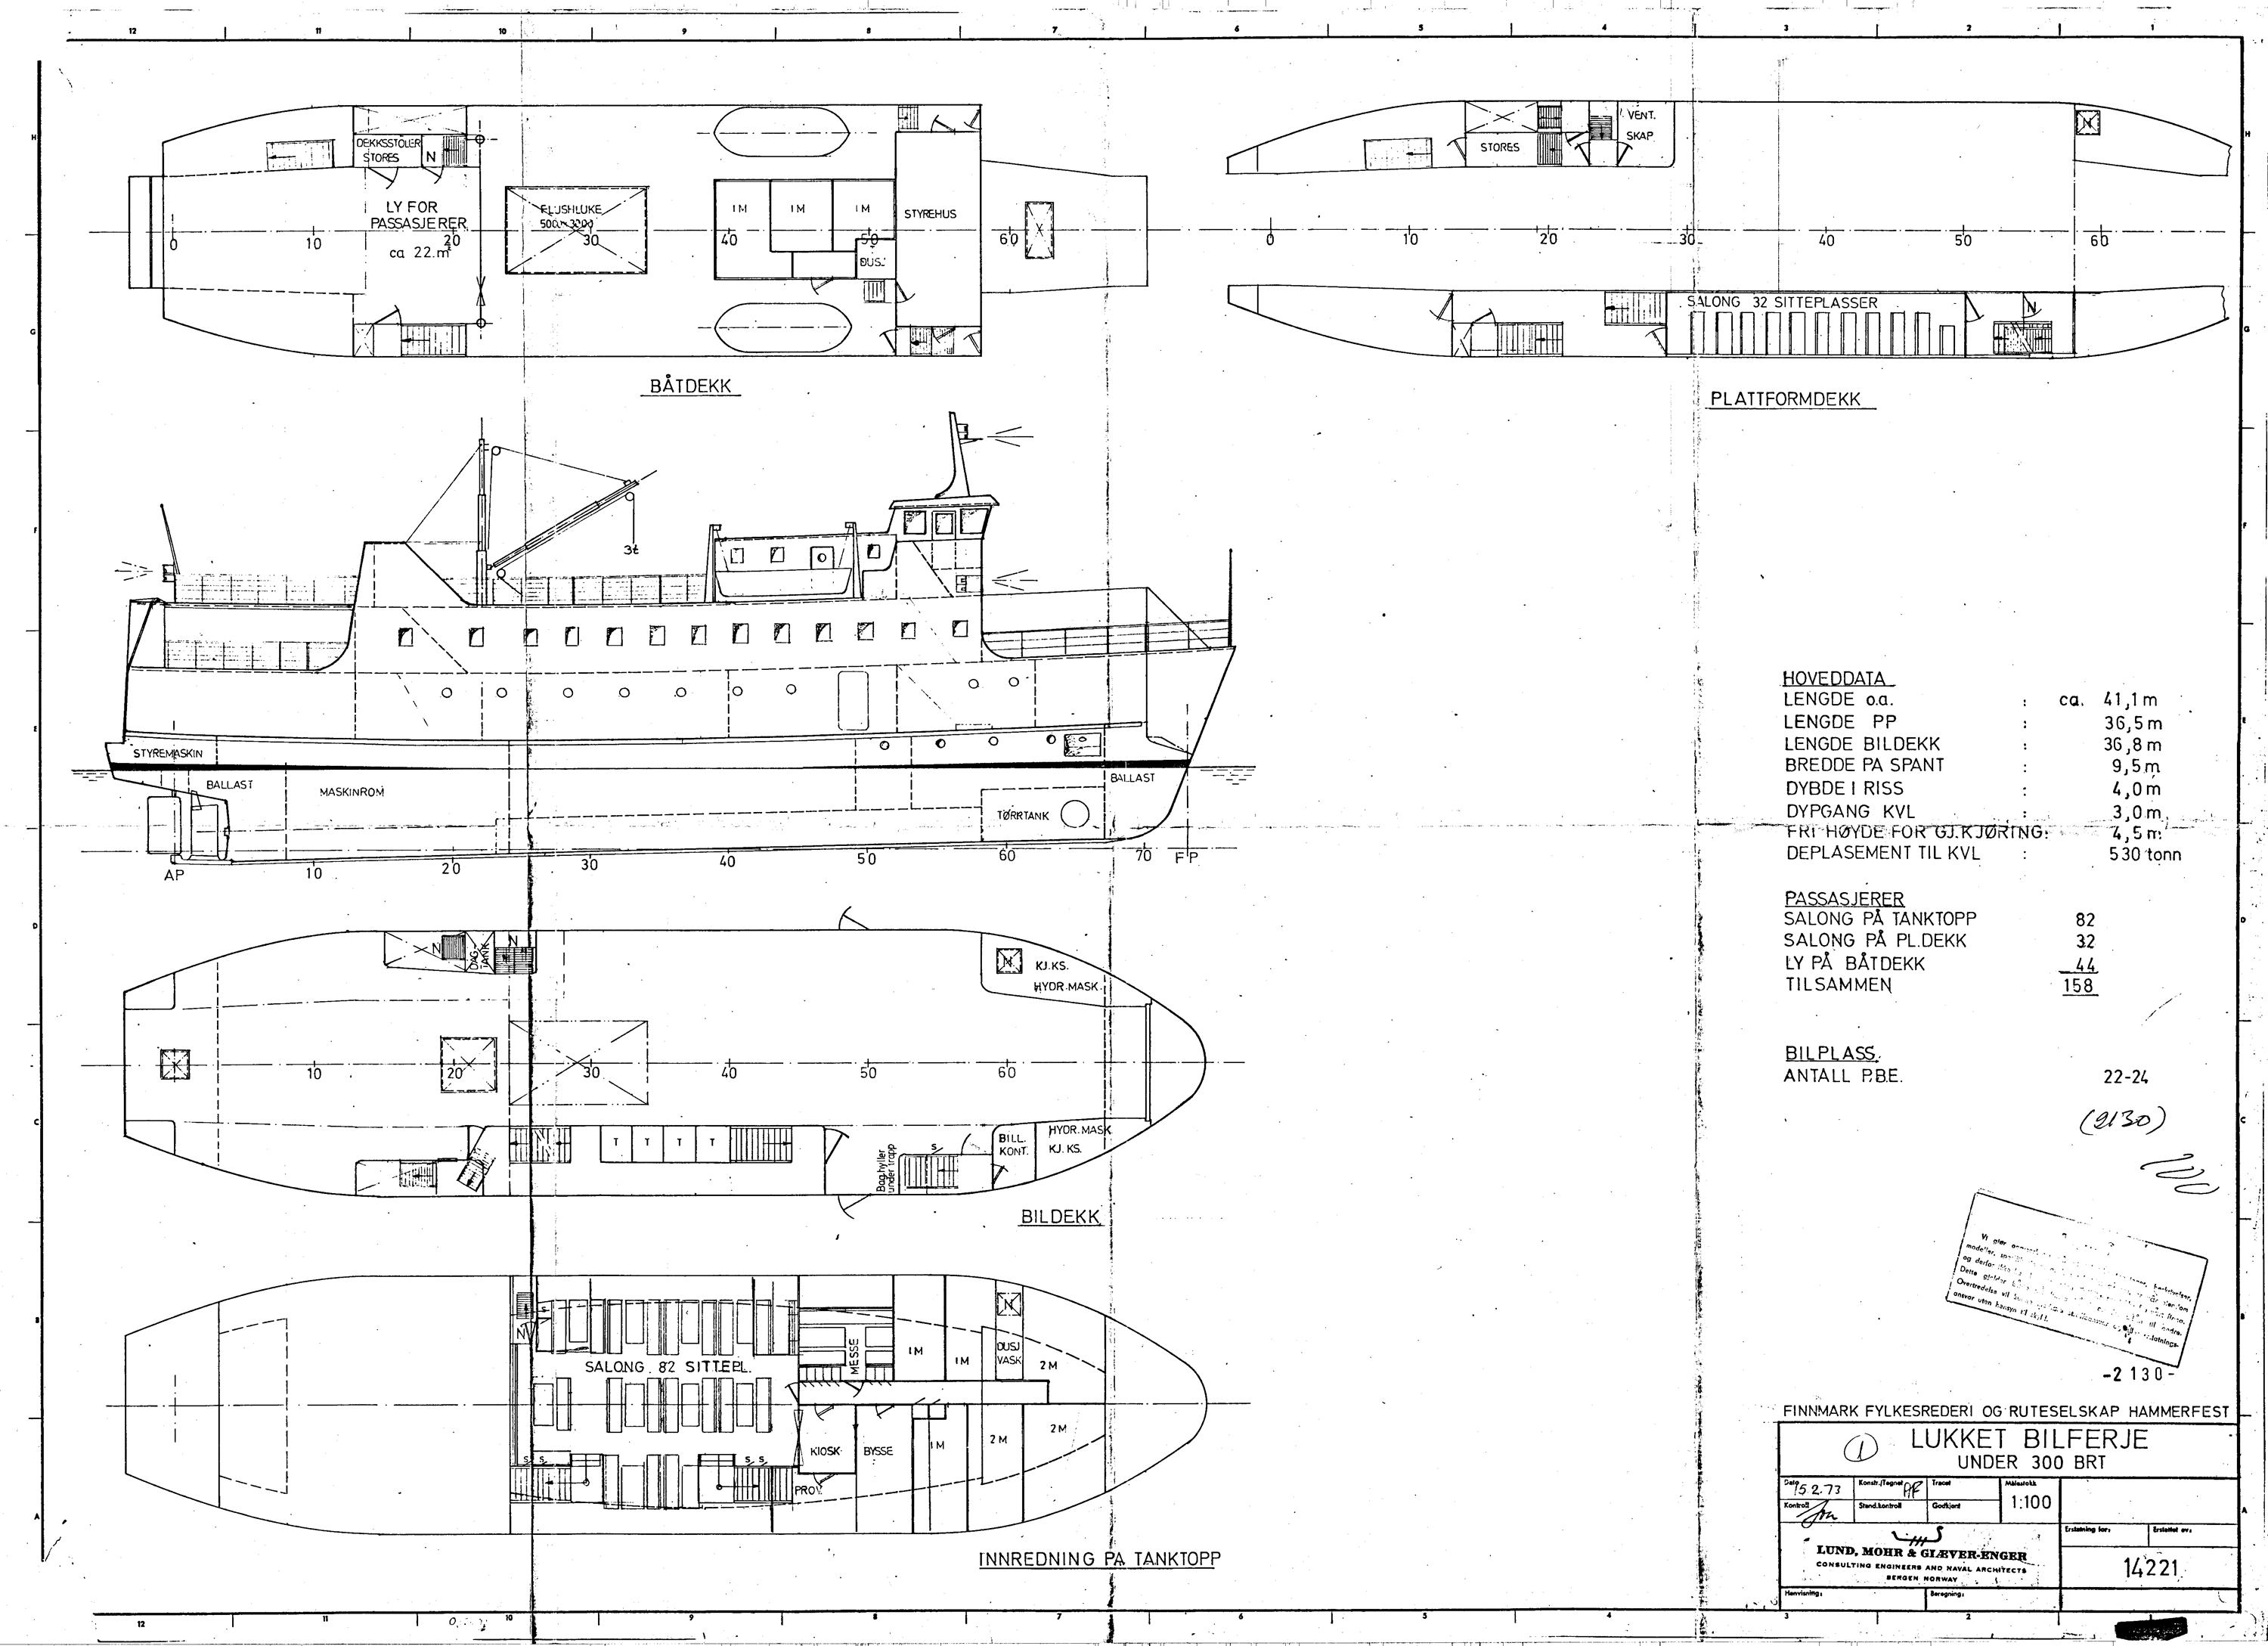 Overview,_Ship_Plan_-_Lukket_Bilferje_-_029